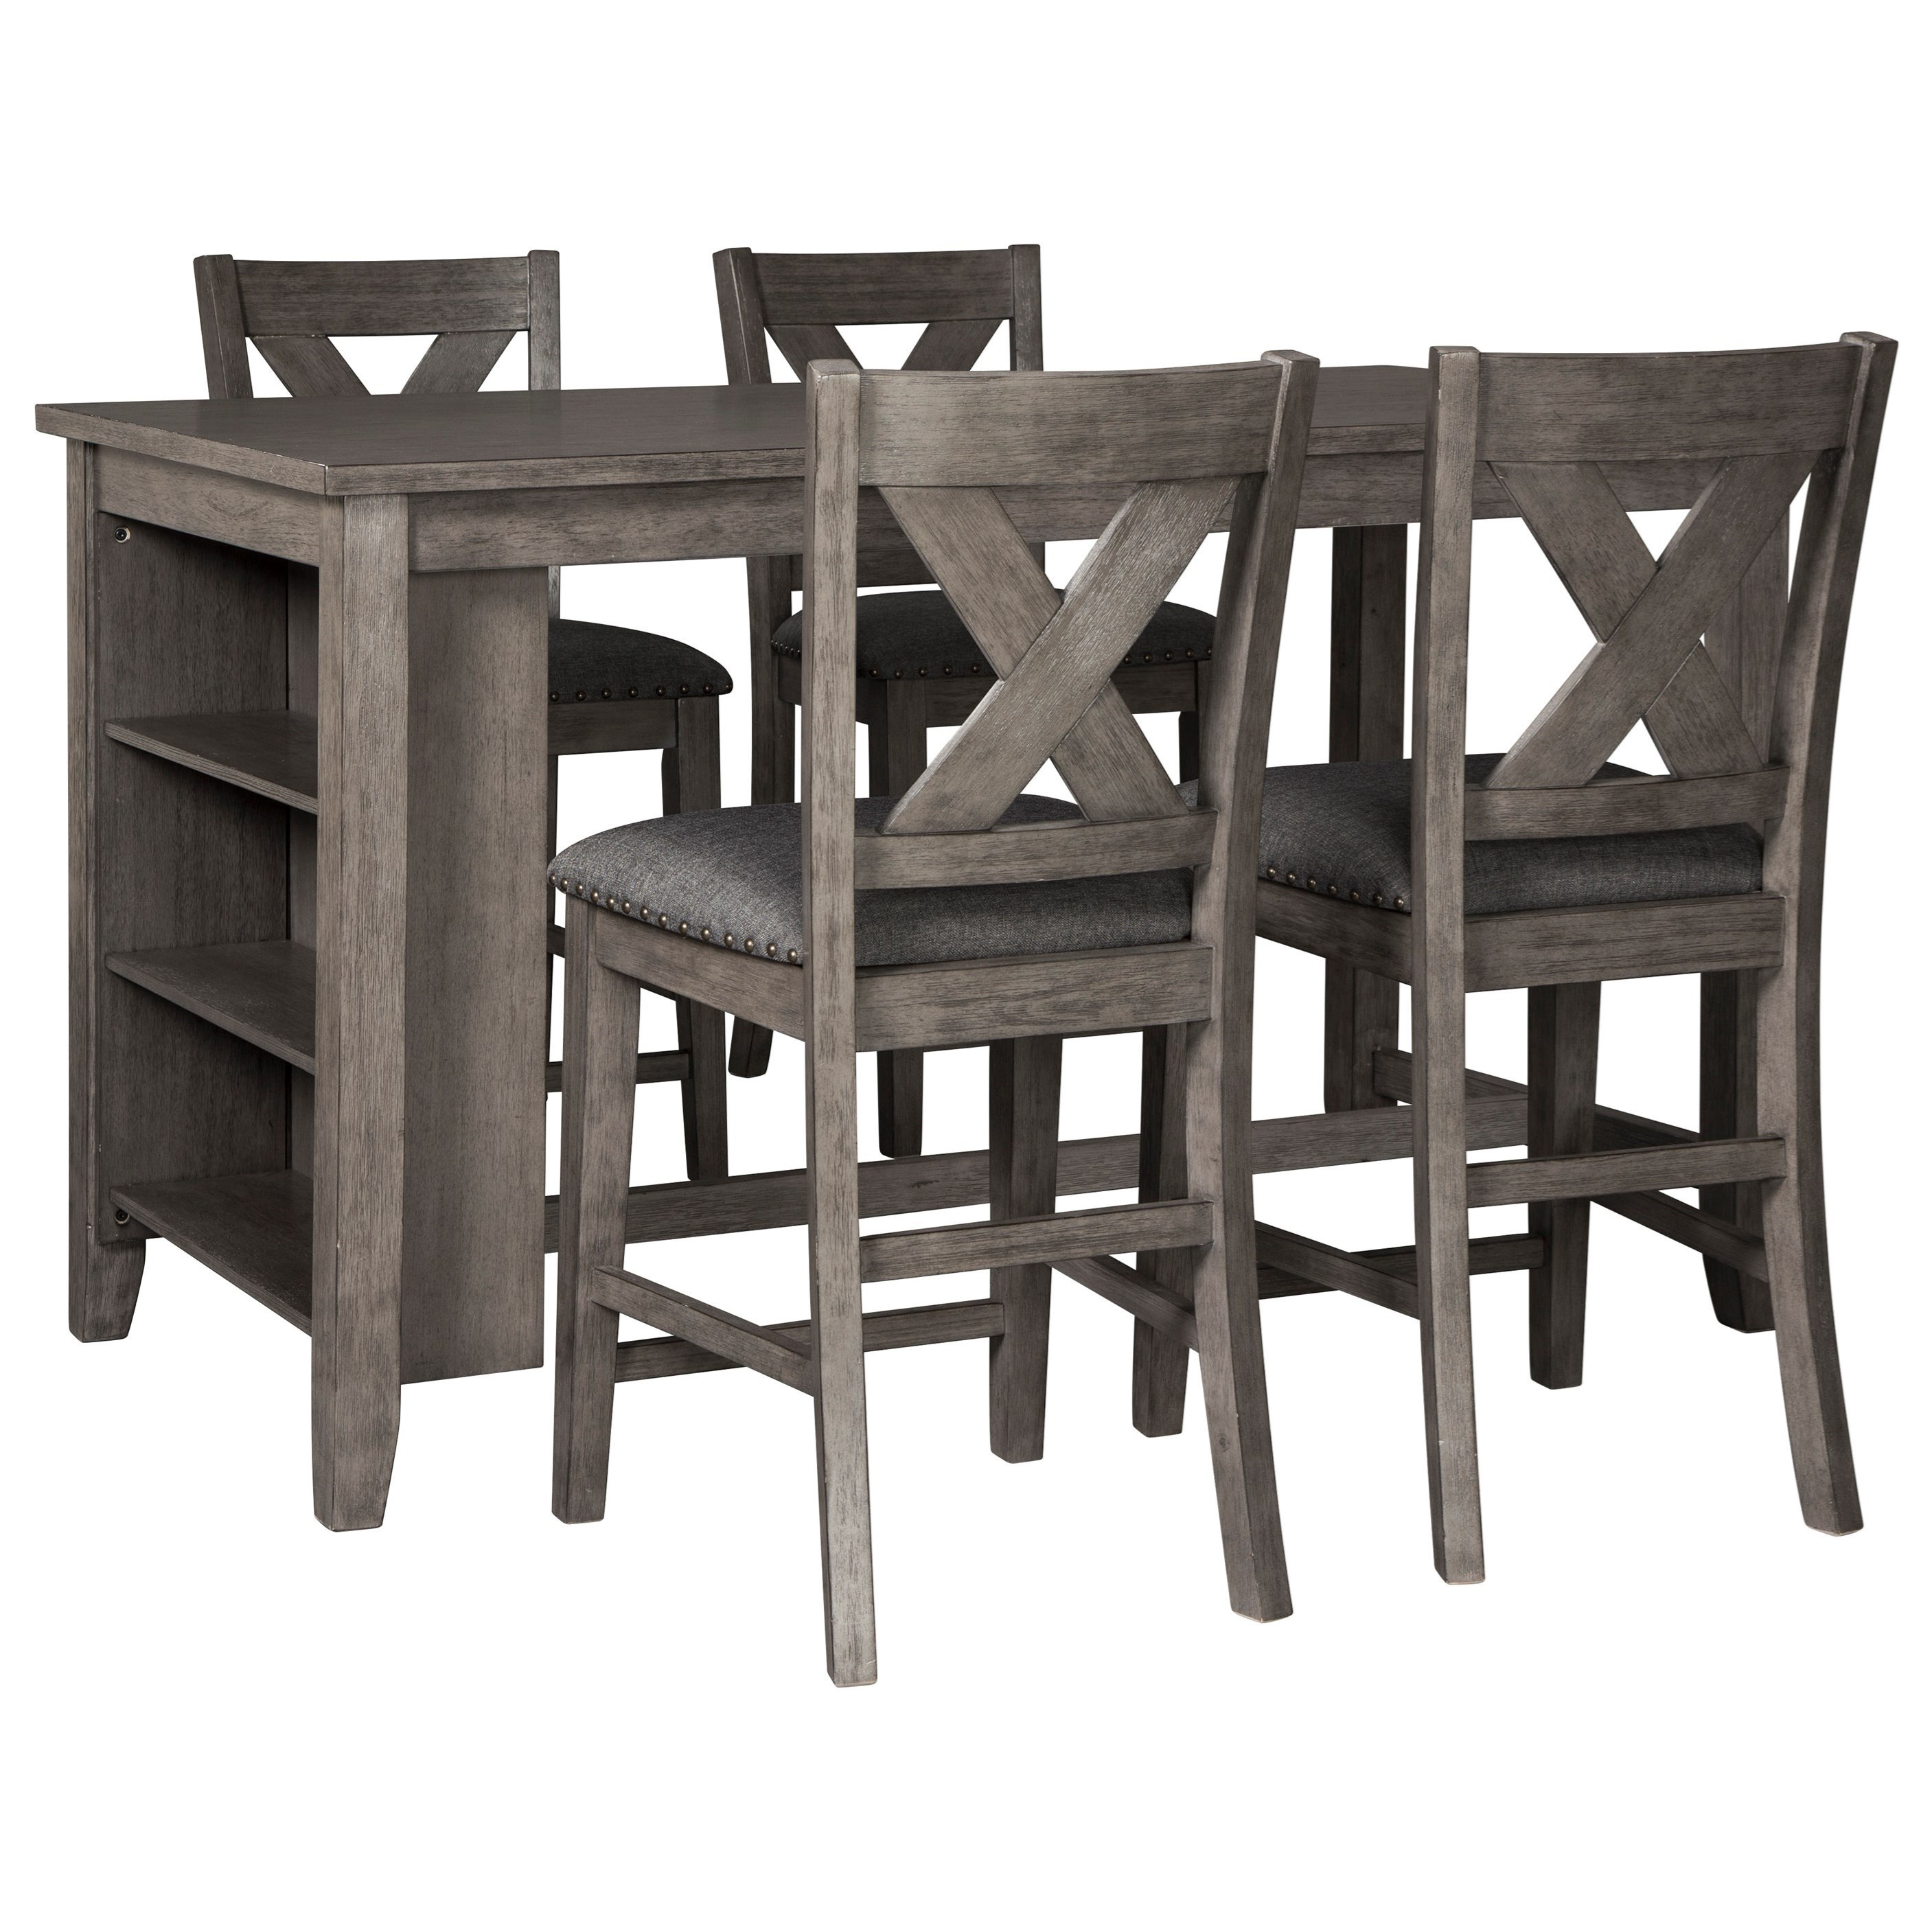 Caitbrook Five Piece Kitchen Island & Chair Set by Signature Design by Ashley at Northeast Factory Direct